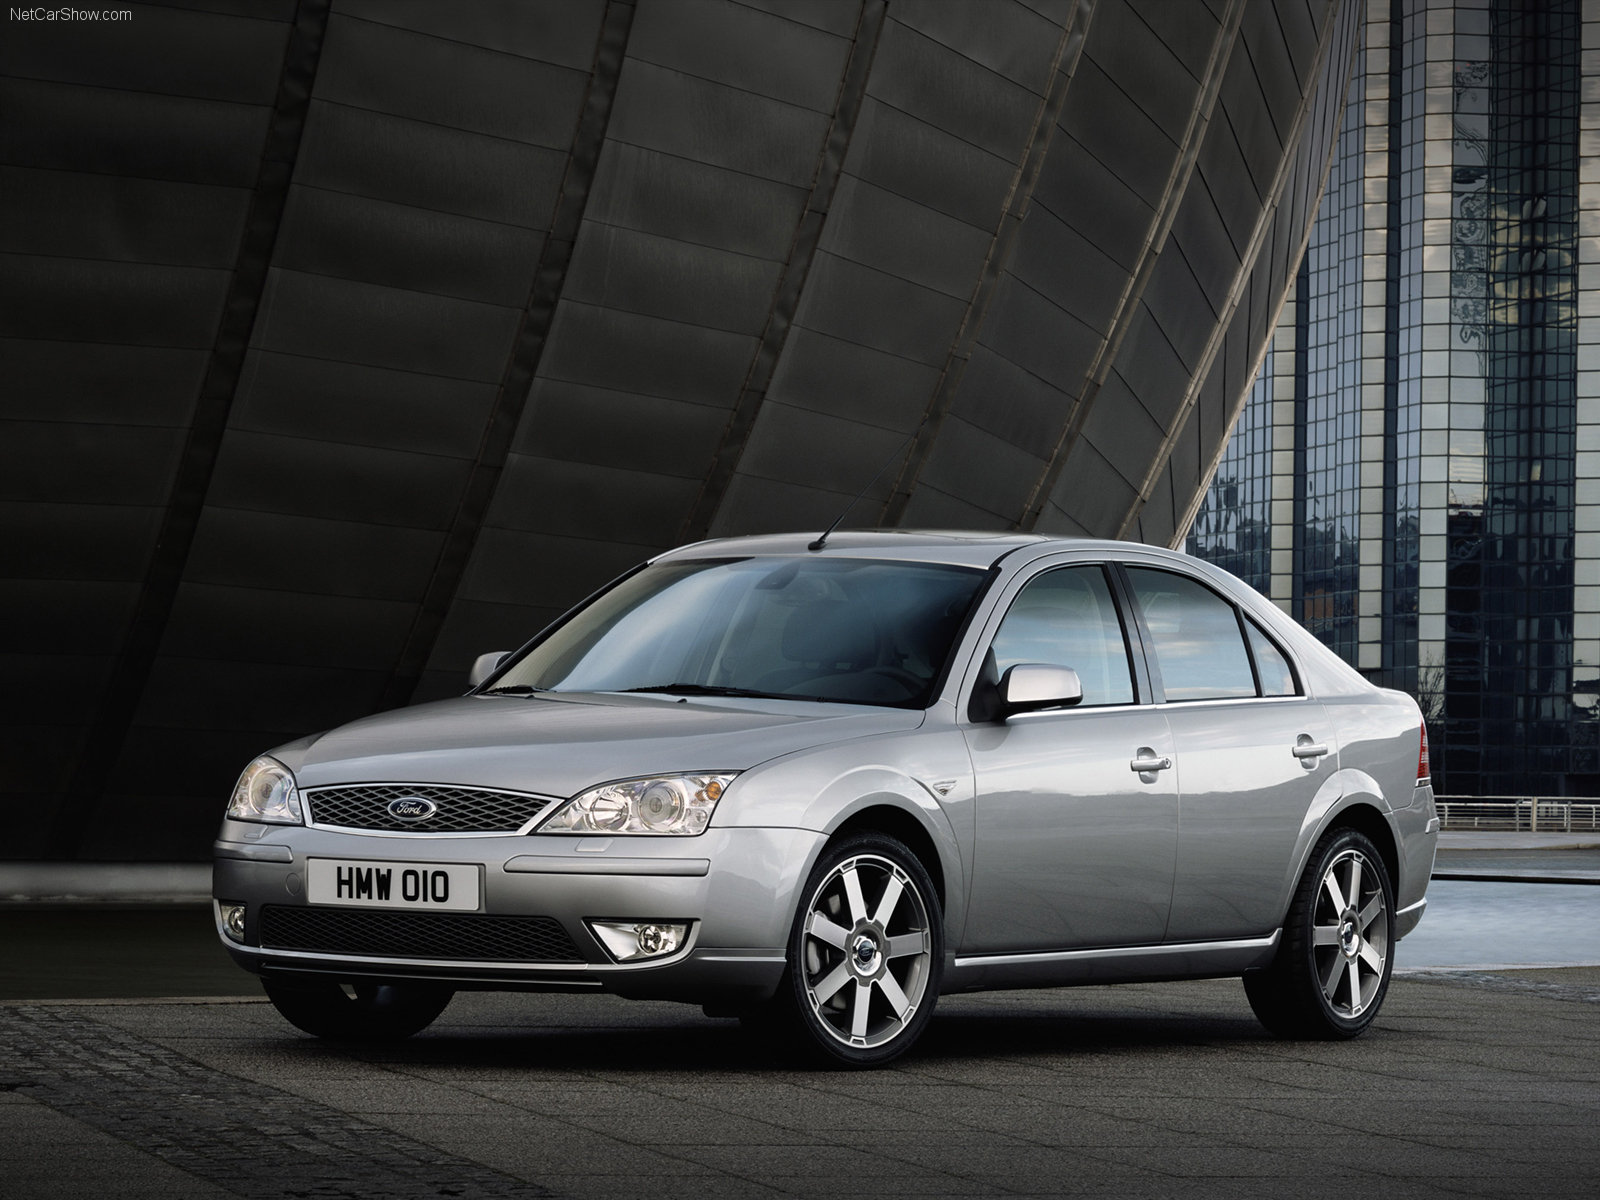 2005 Ford Mondeo #19